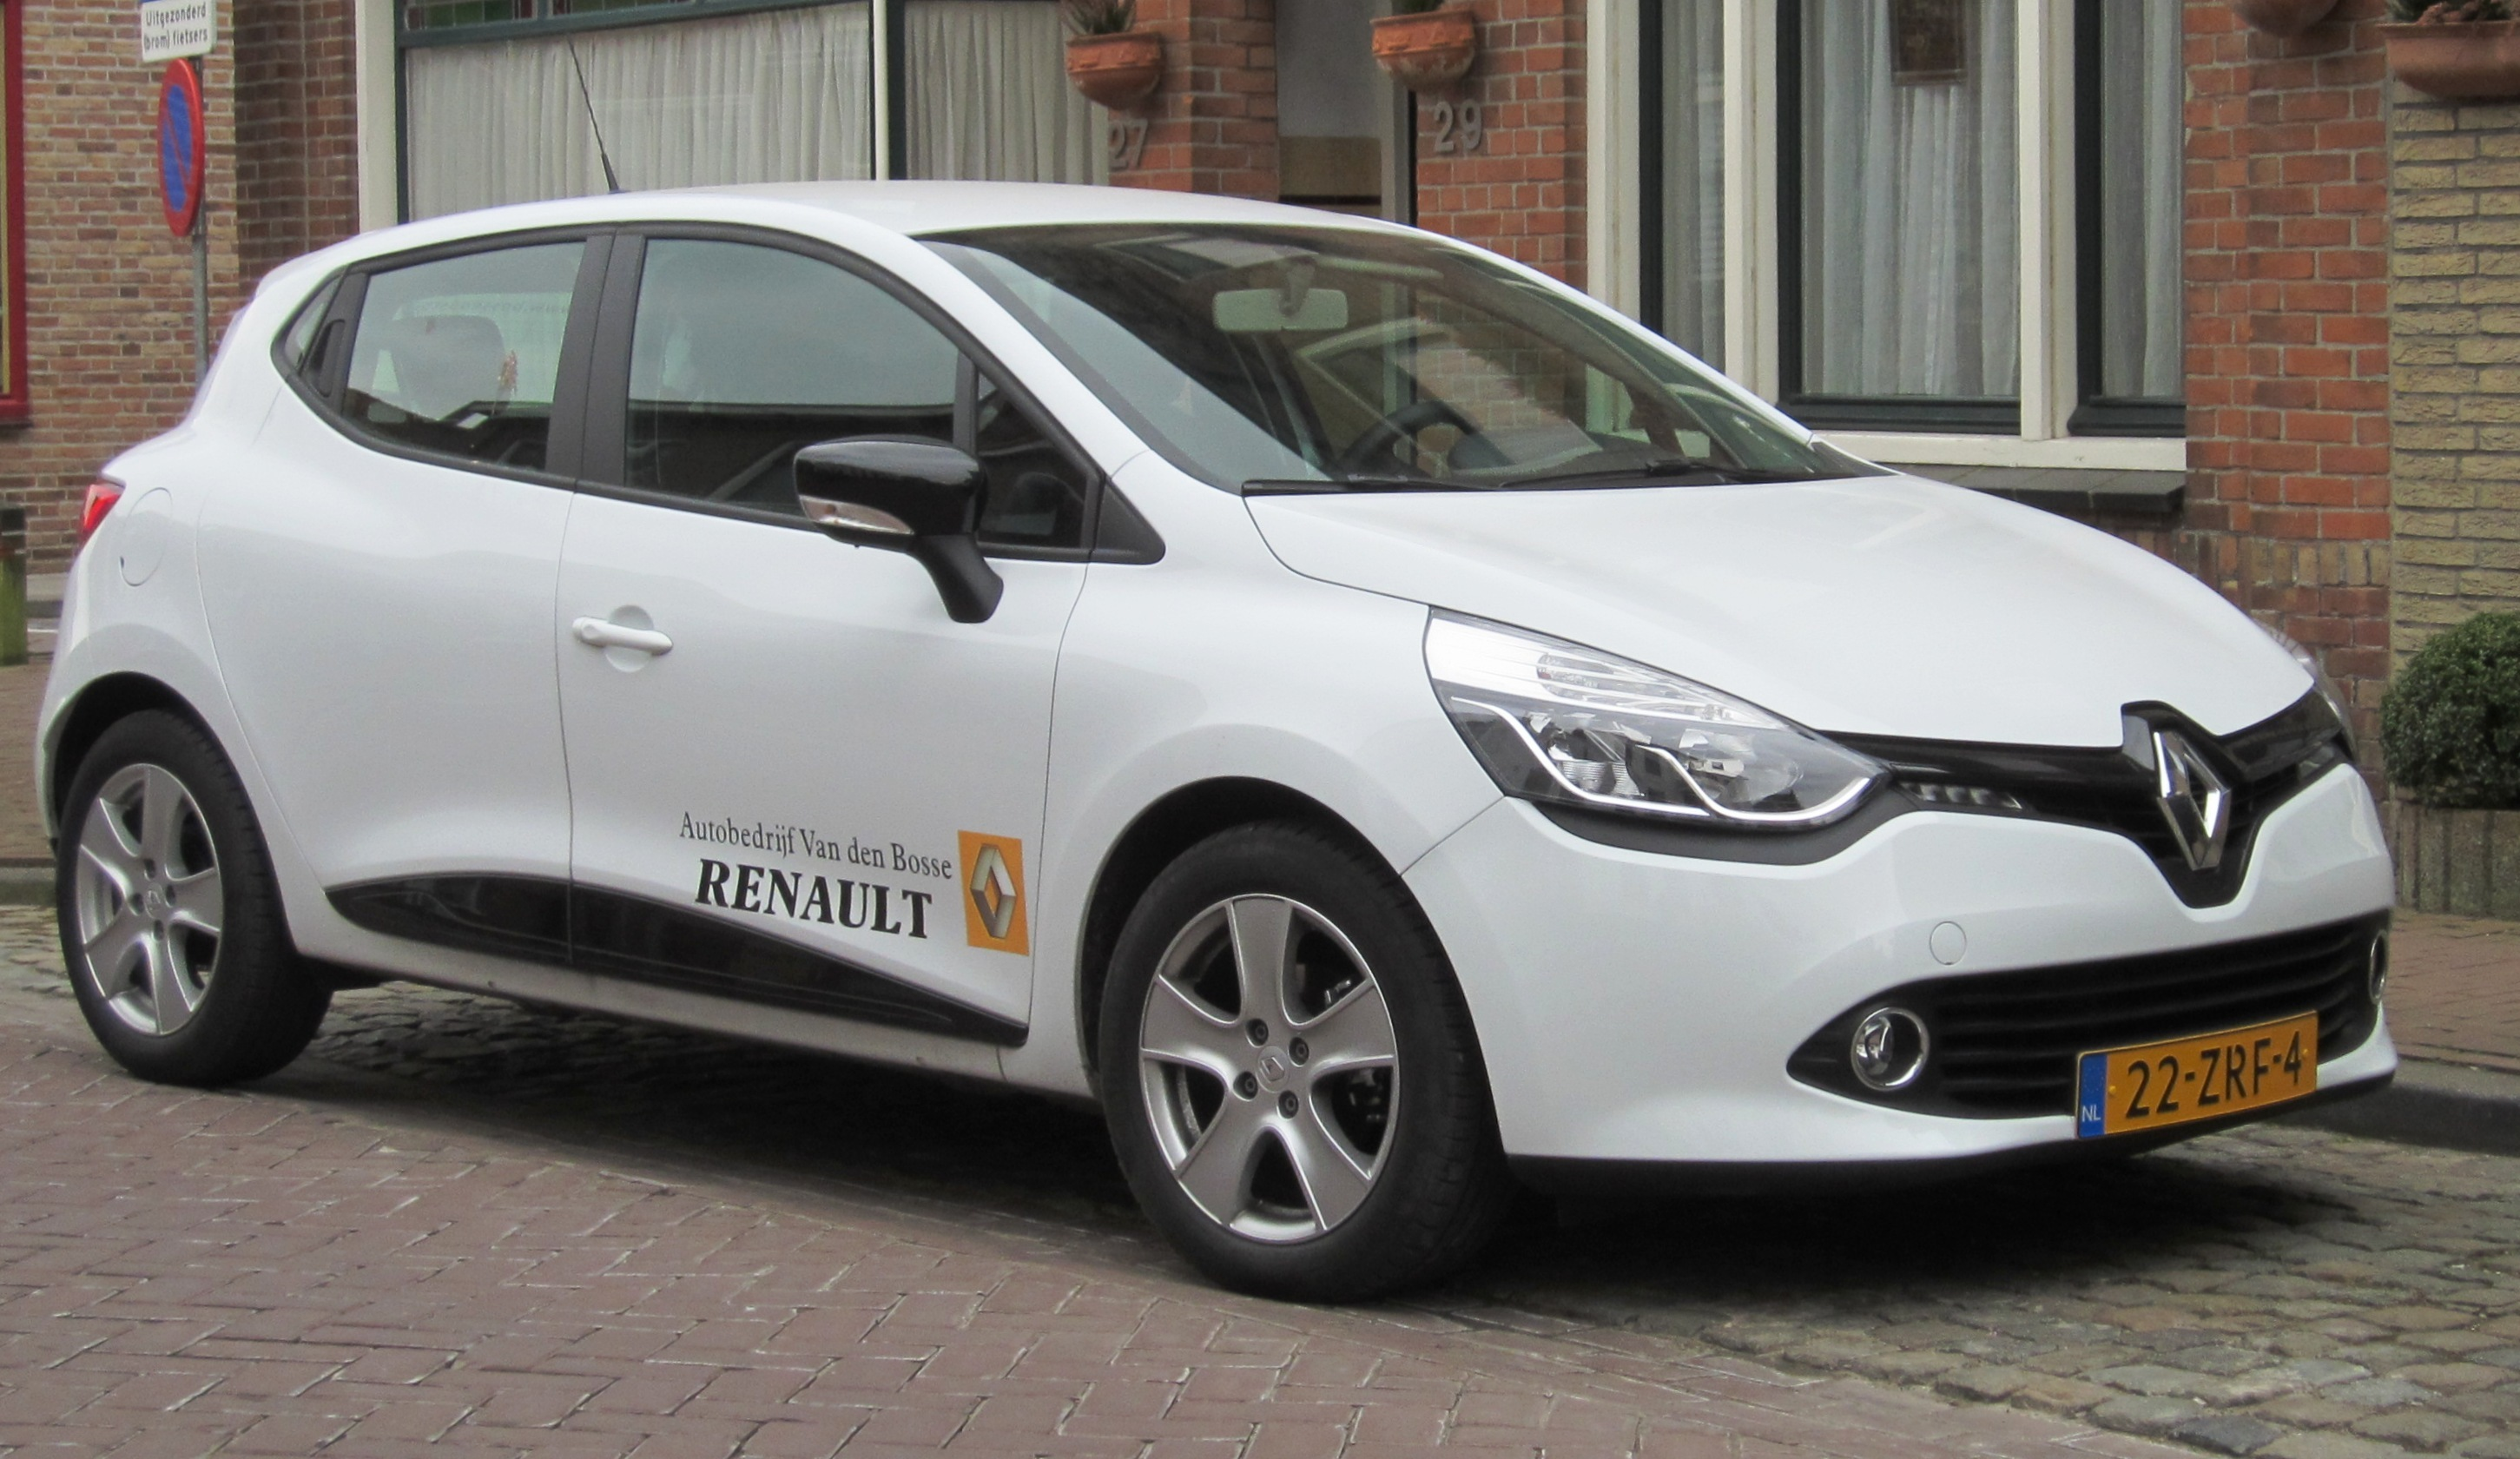 file renault clio tce 5 door in aardenburg 2013 jpg wikimedia commons. Black Bedroom Furniture Sets. Home Design Ideas